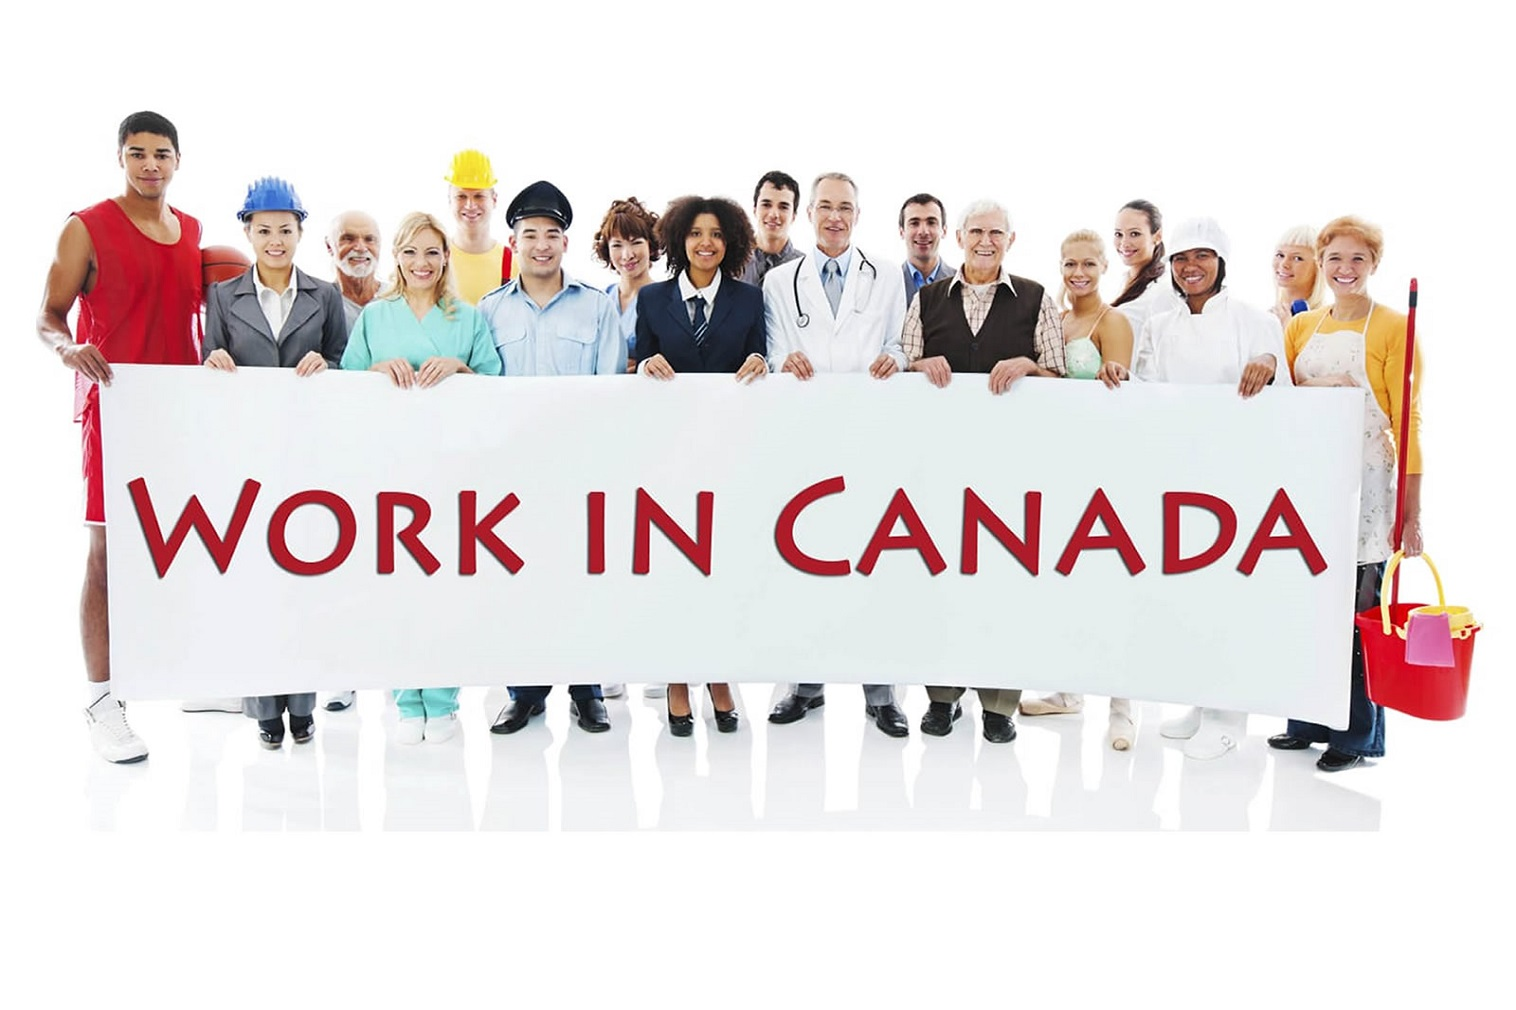 Visitors who are currently in Canada and have a valid job offer will be able to apply for an employer-specific work permit and, if approved, receive the permit without having to leave the country.